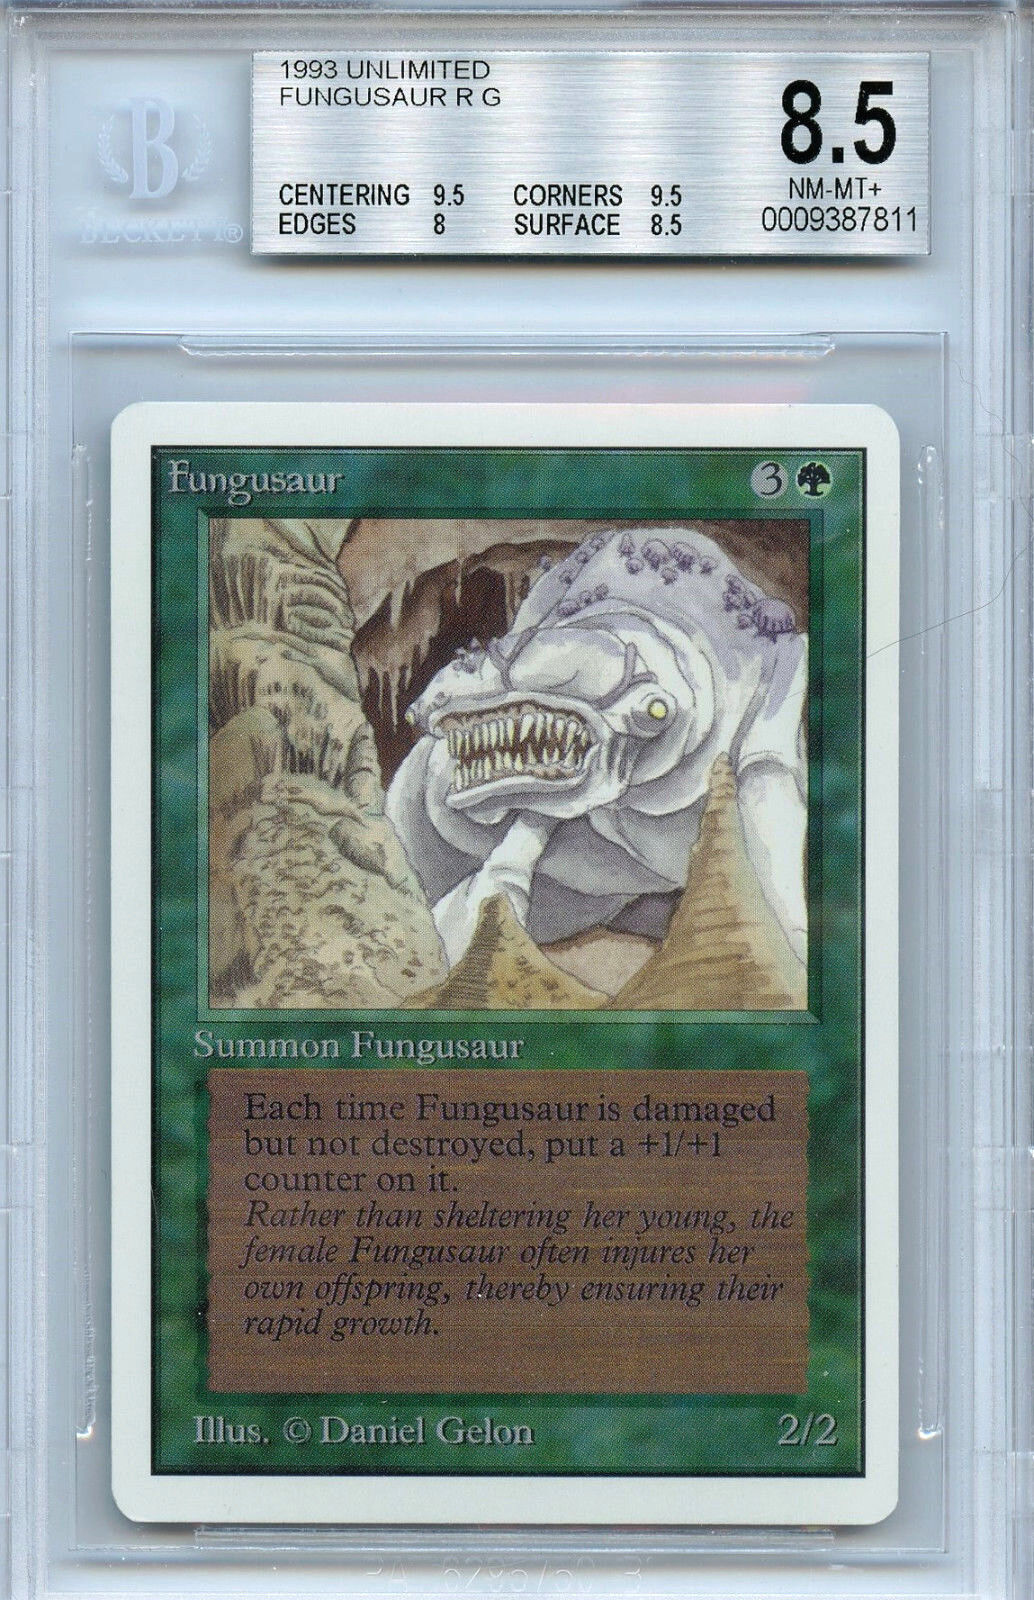 Mtg unbegrenzt fungusaur bgs 8,5 nm-mt + card magic the gathering wotc